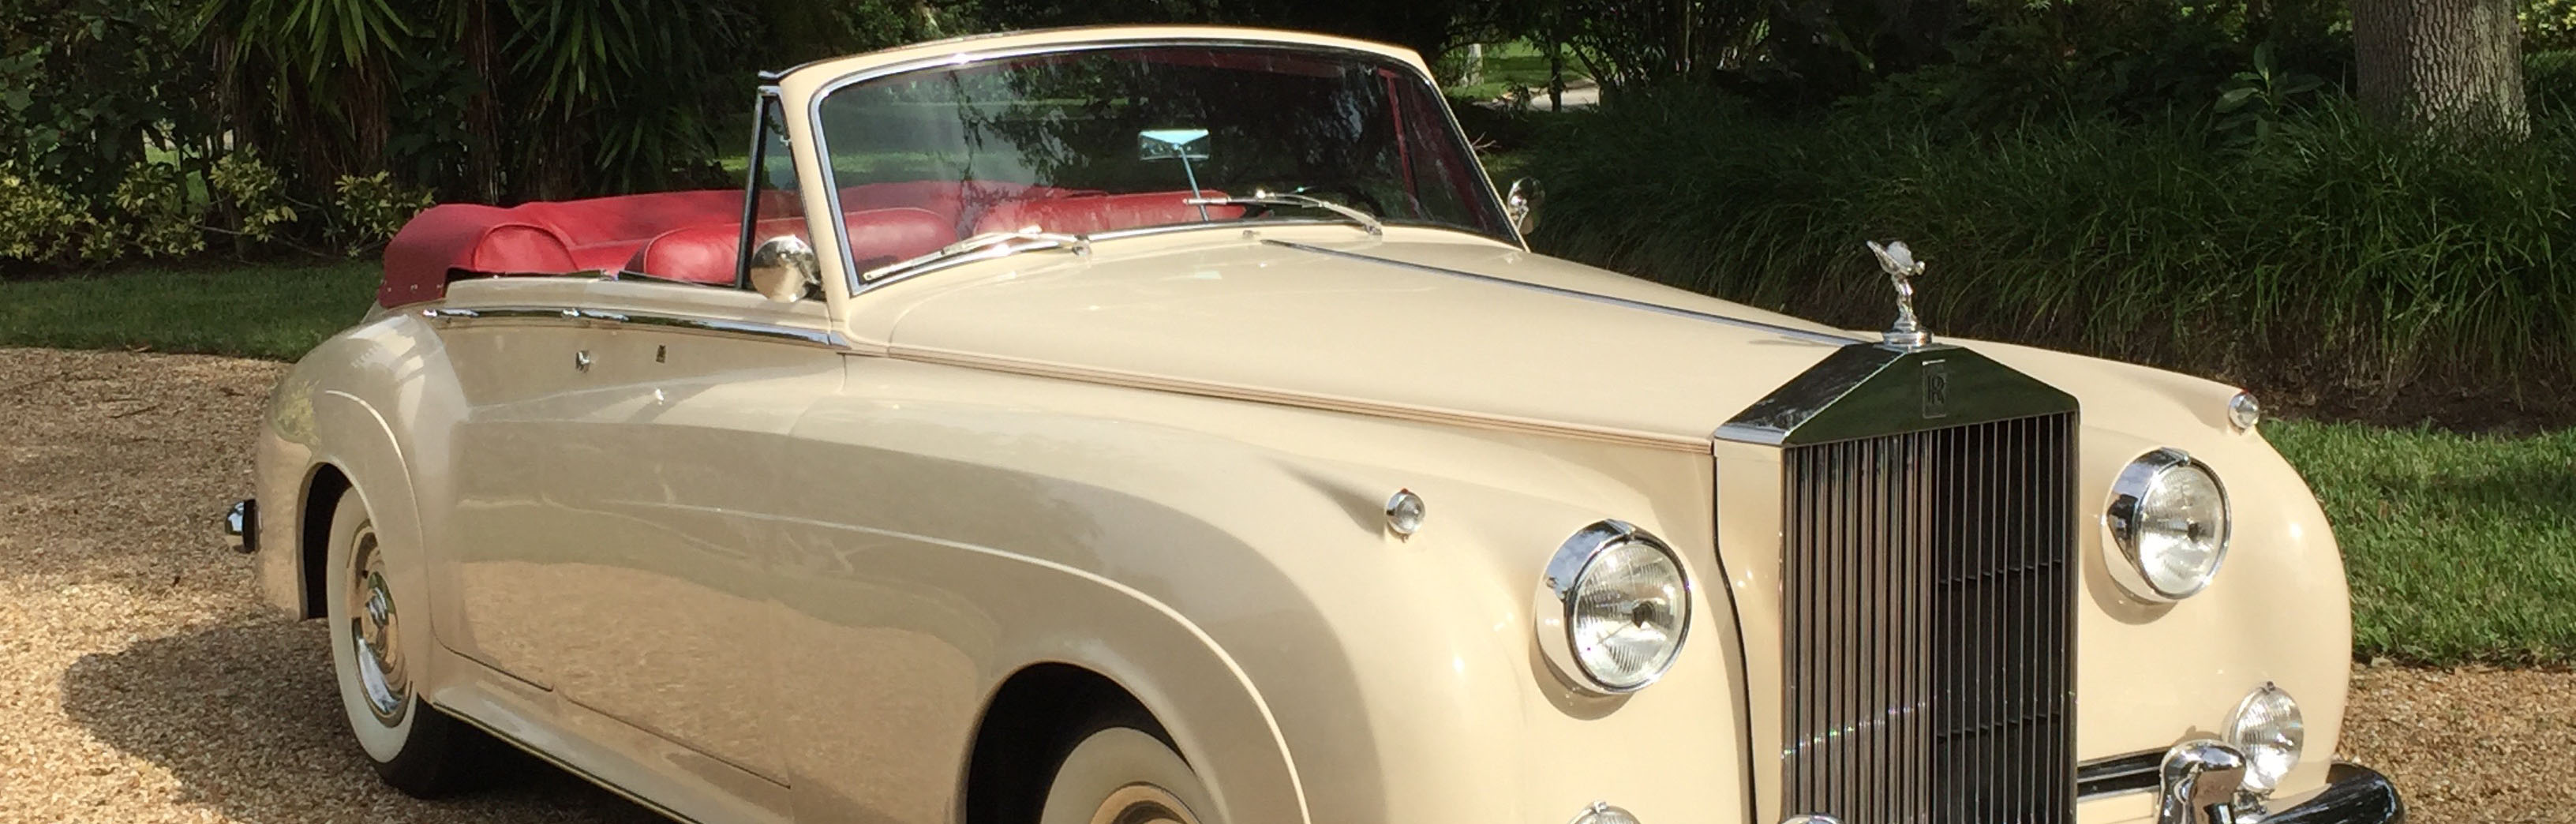 carousel_crop?t=1503948052 a supplier of rolls royce & bentley new and used parts since 1979  at edmiracle.co